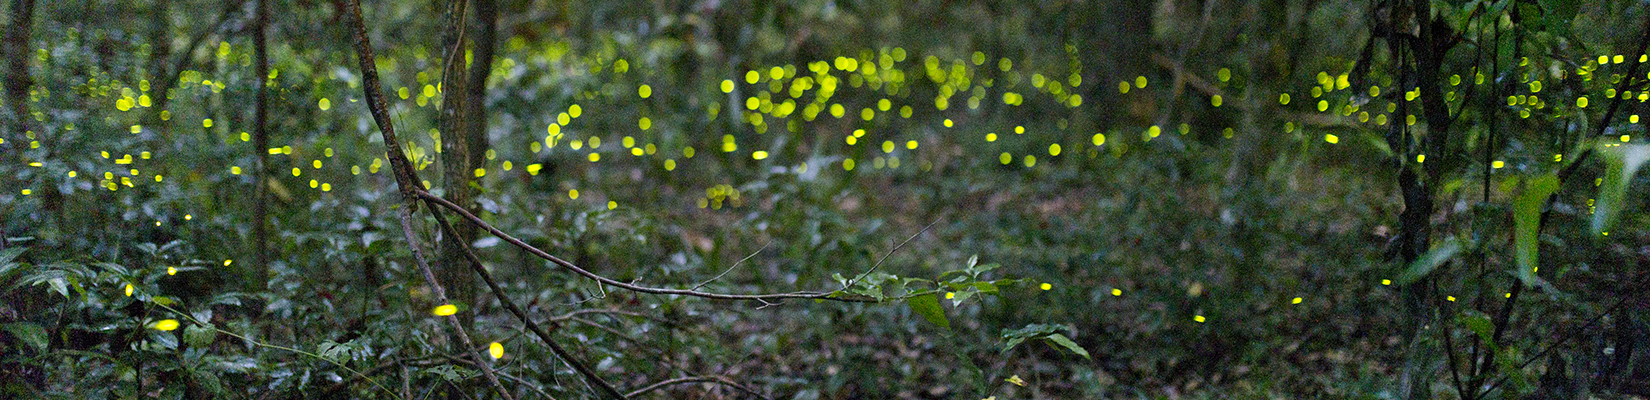 lightening bugs in the forest